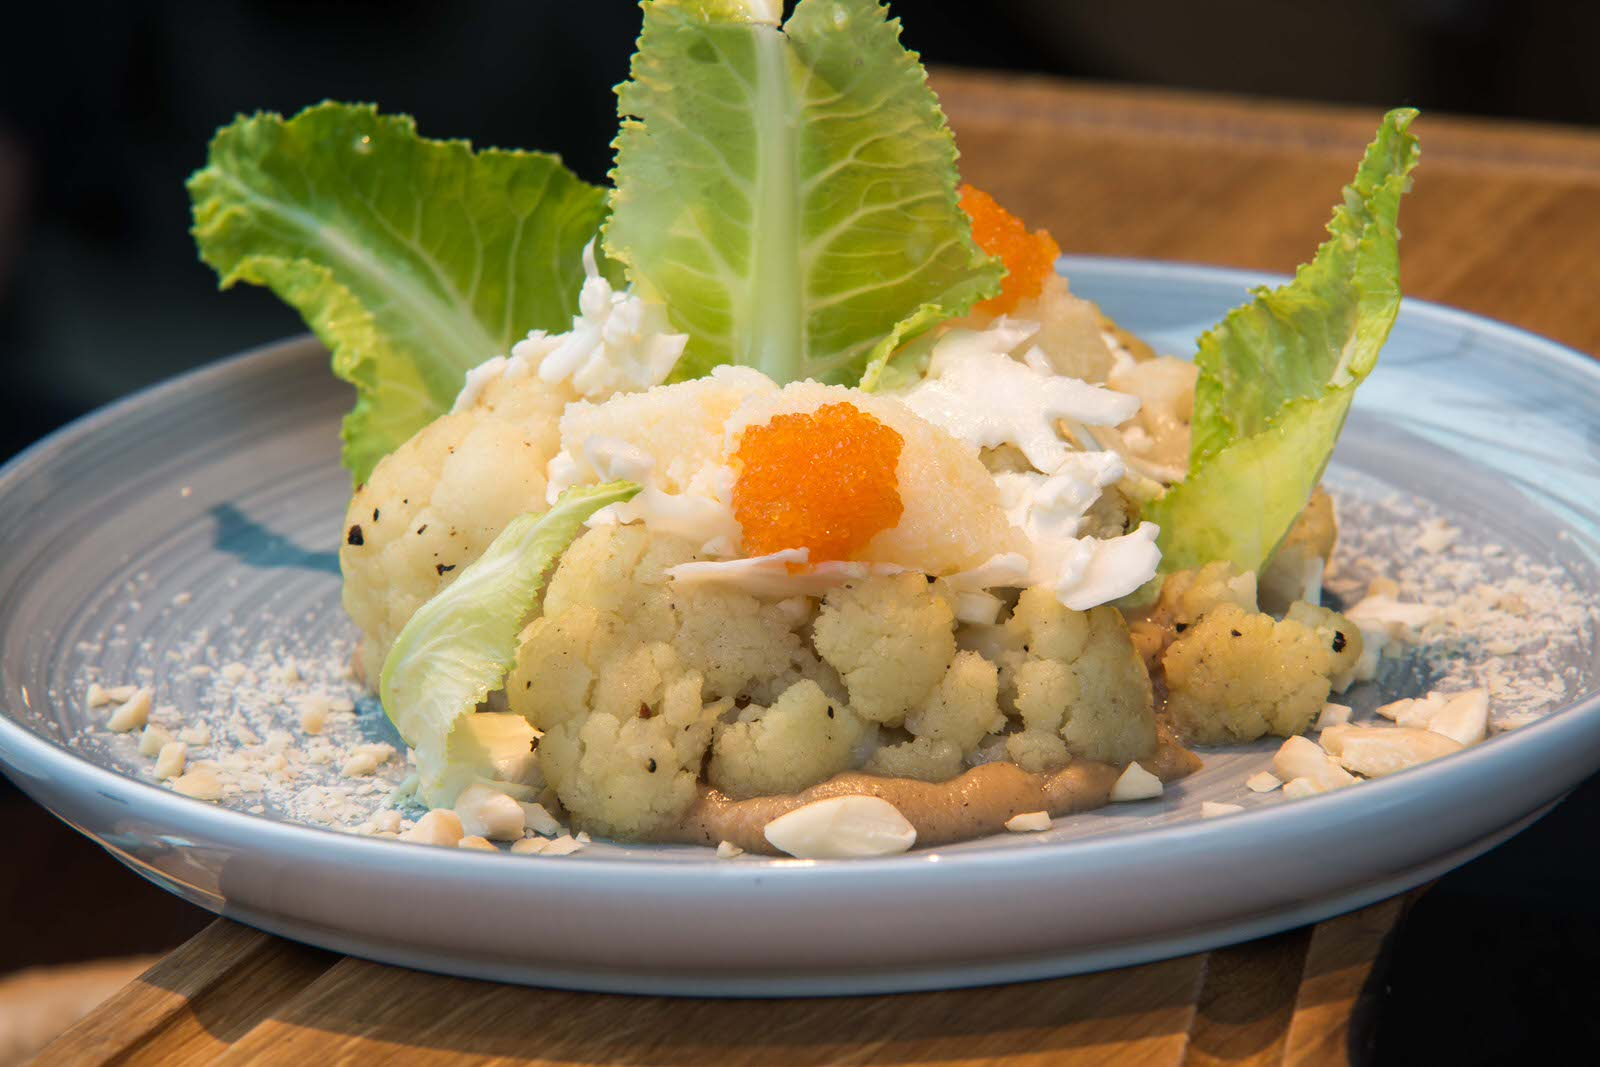 Variations of cauliflower (cooked, raw and puree) with capelin roe and toasted almonds